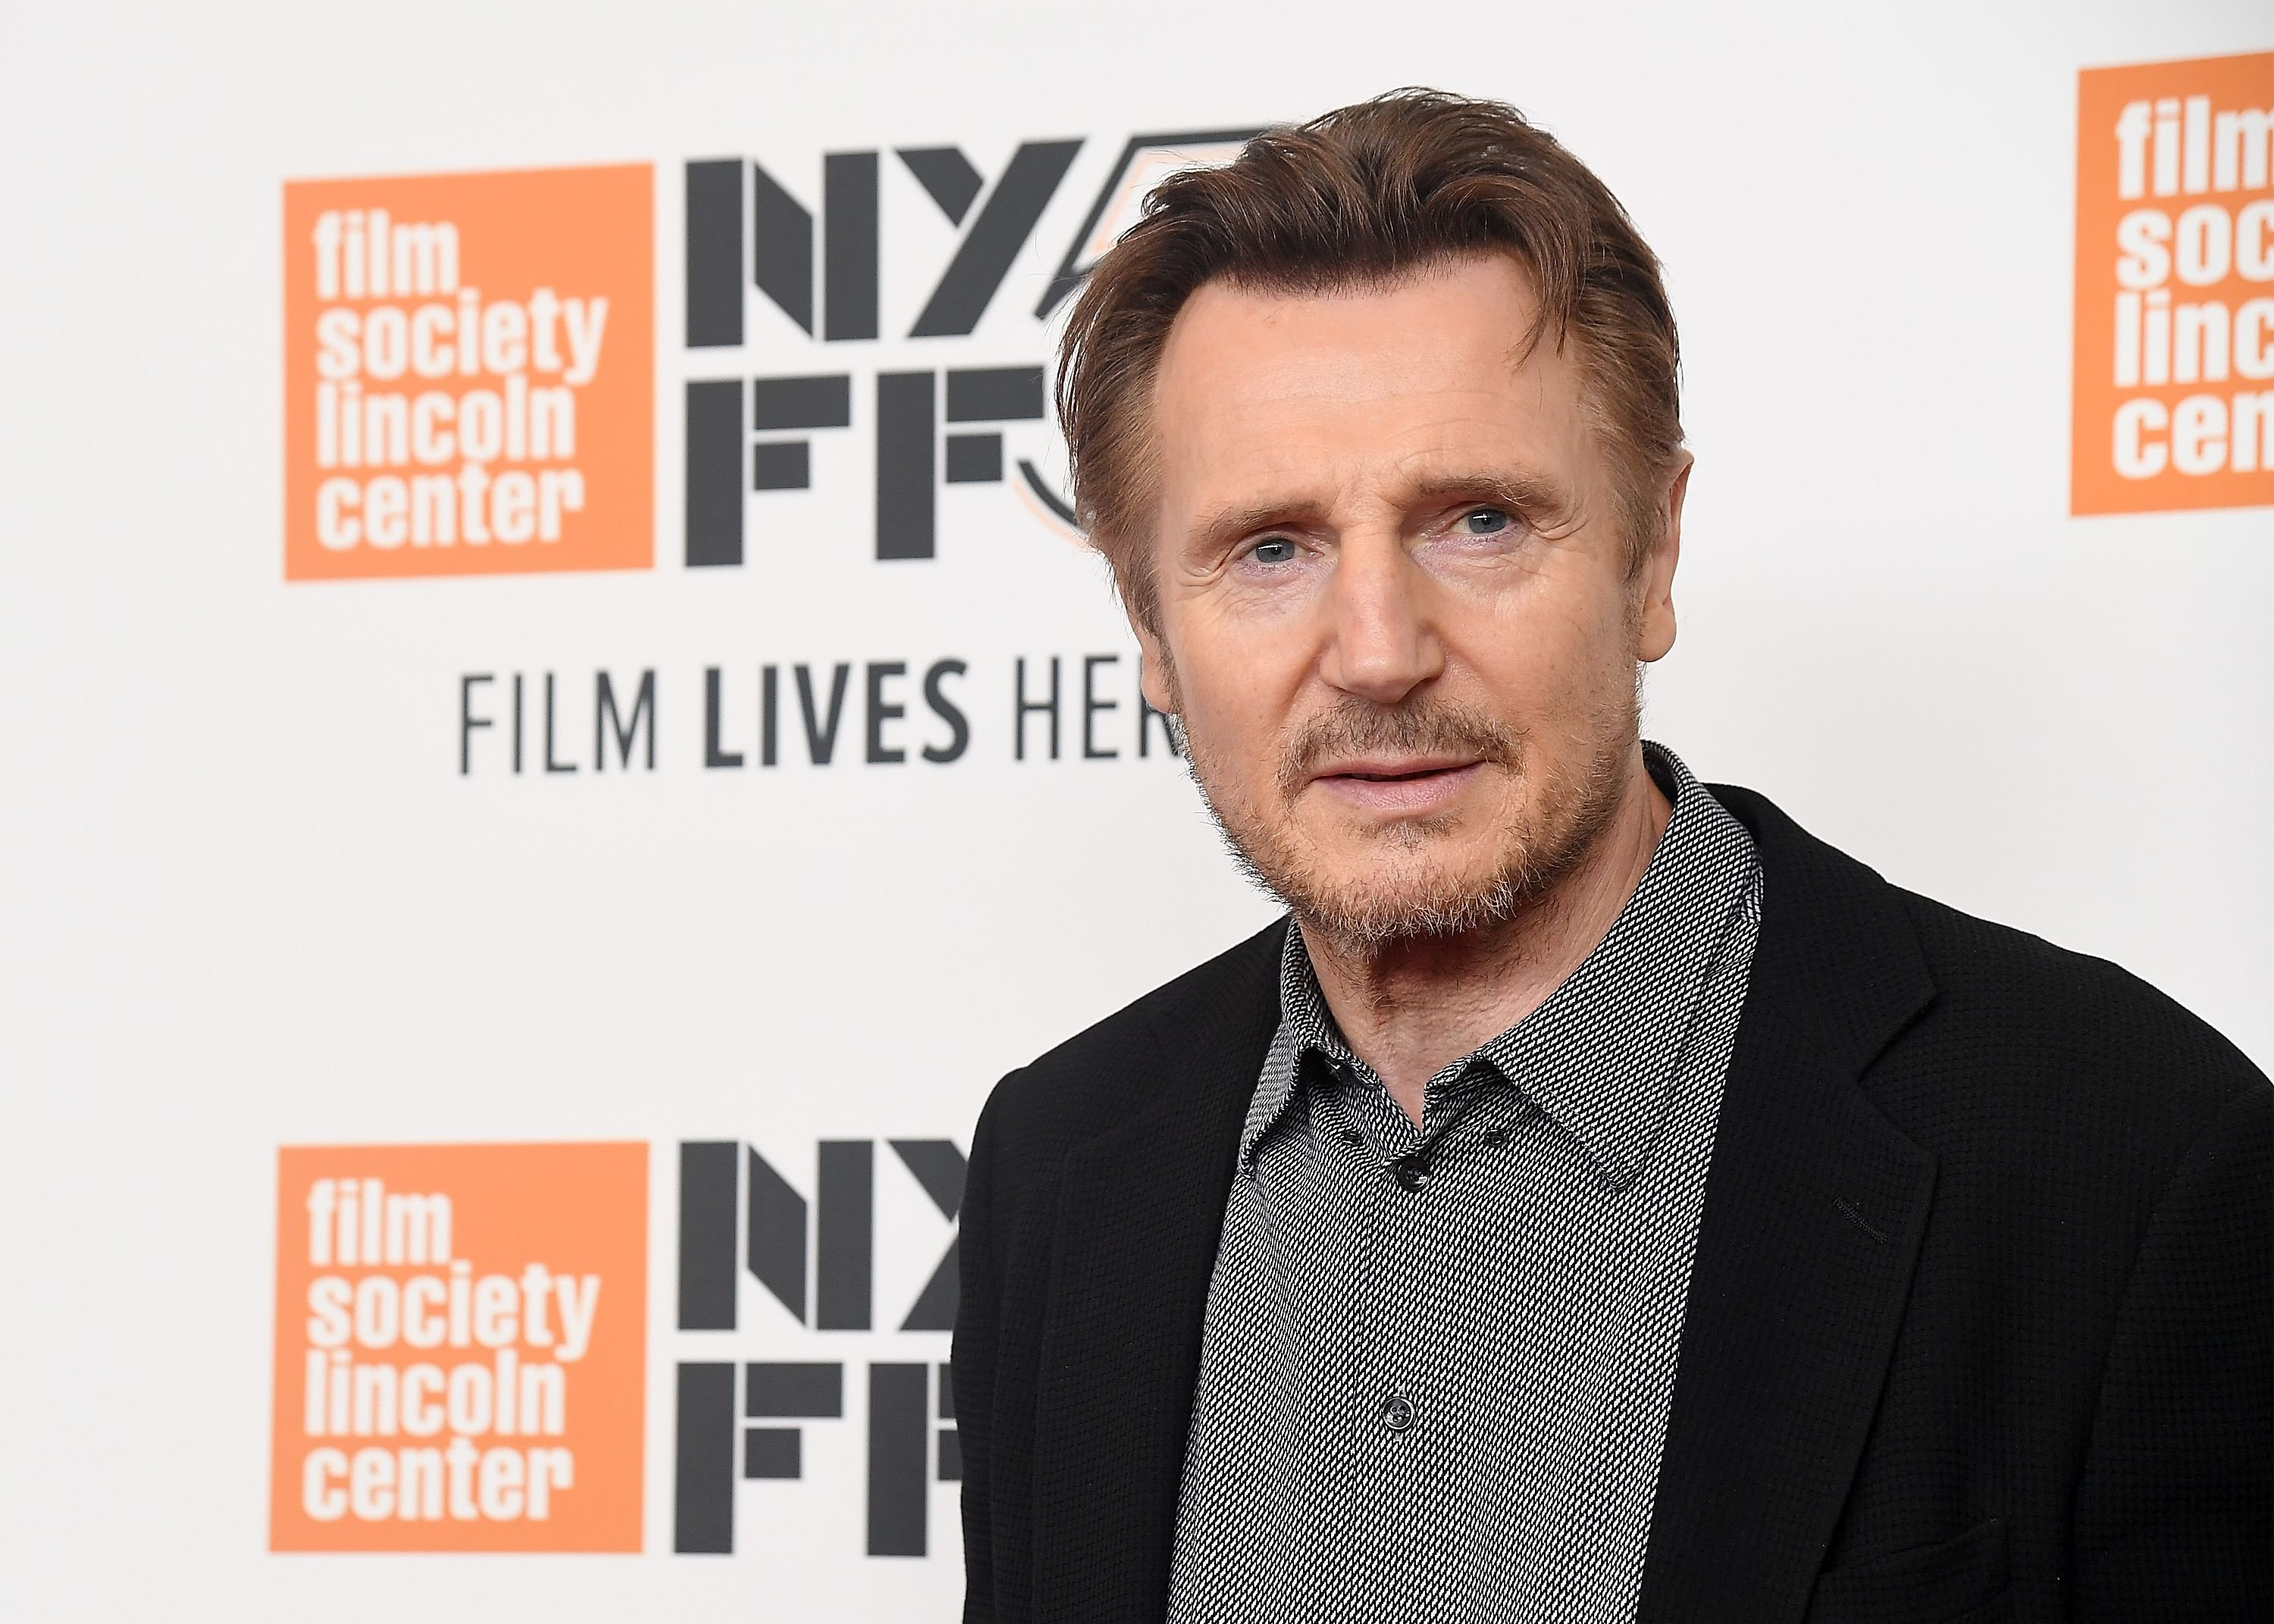 """Liam Neeson at the screening of """"The Ballad of Buster Scruggs""""  October 4, 2018 